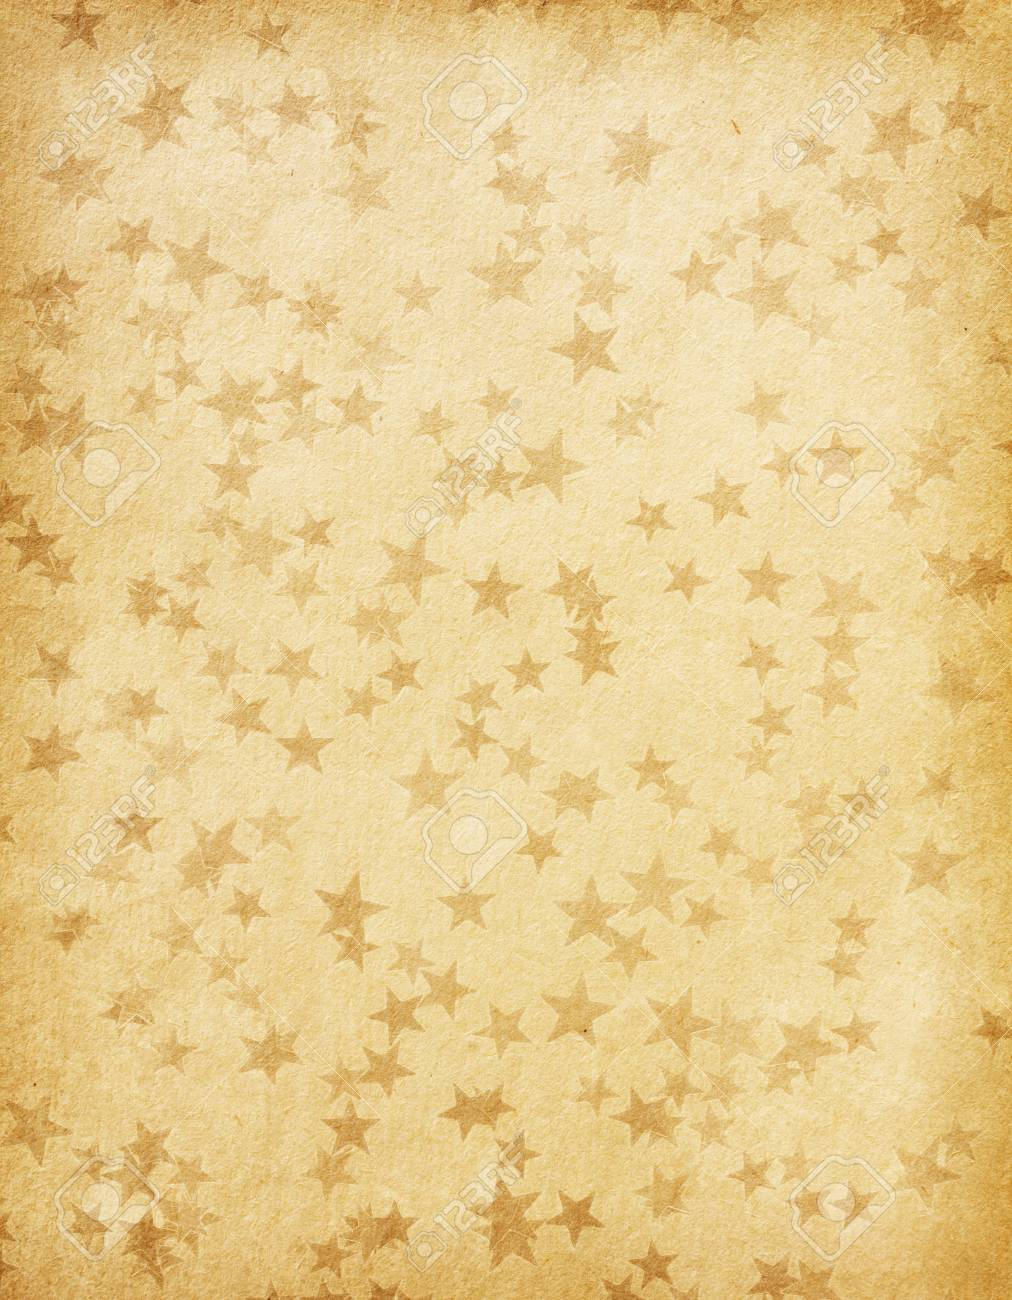 vintage paper decorated with  stars Stock Photo - 16406149